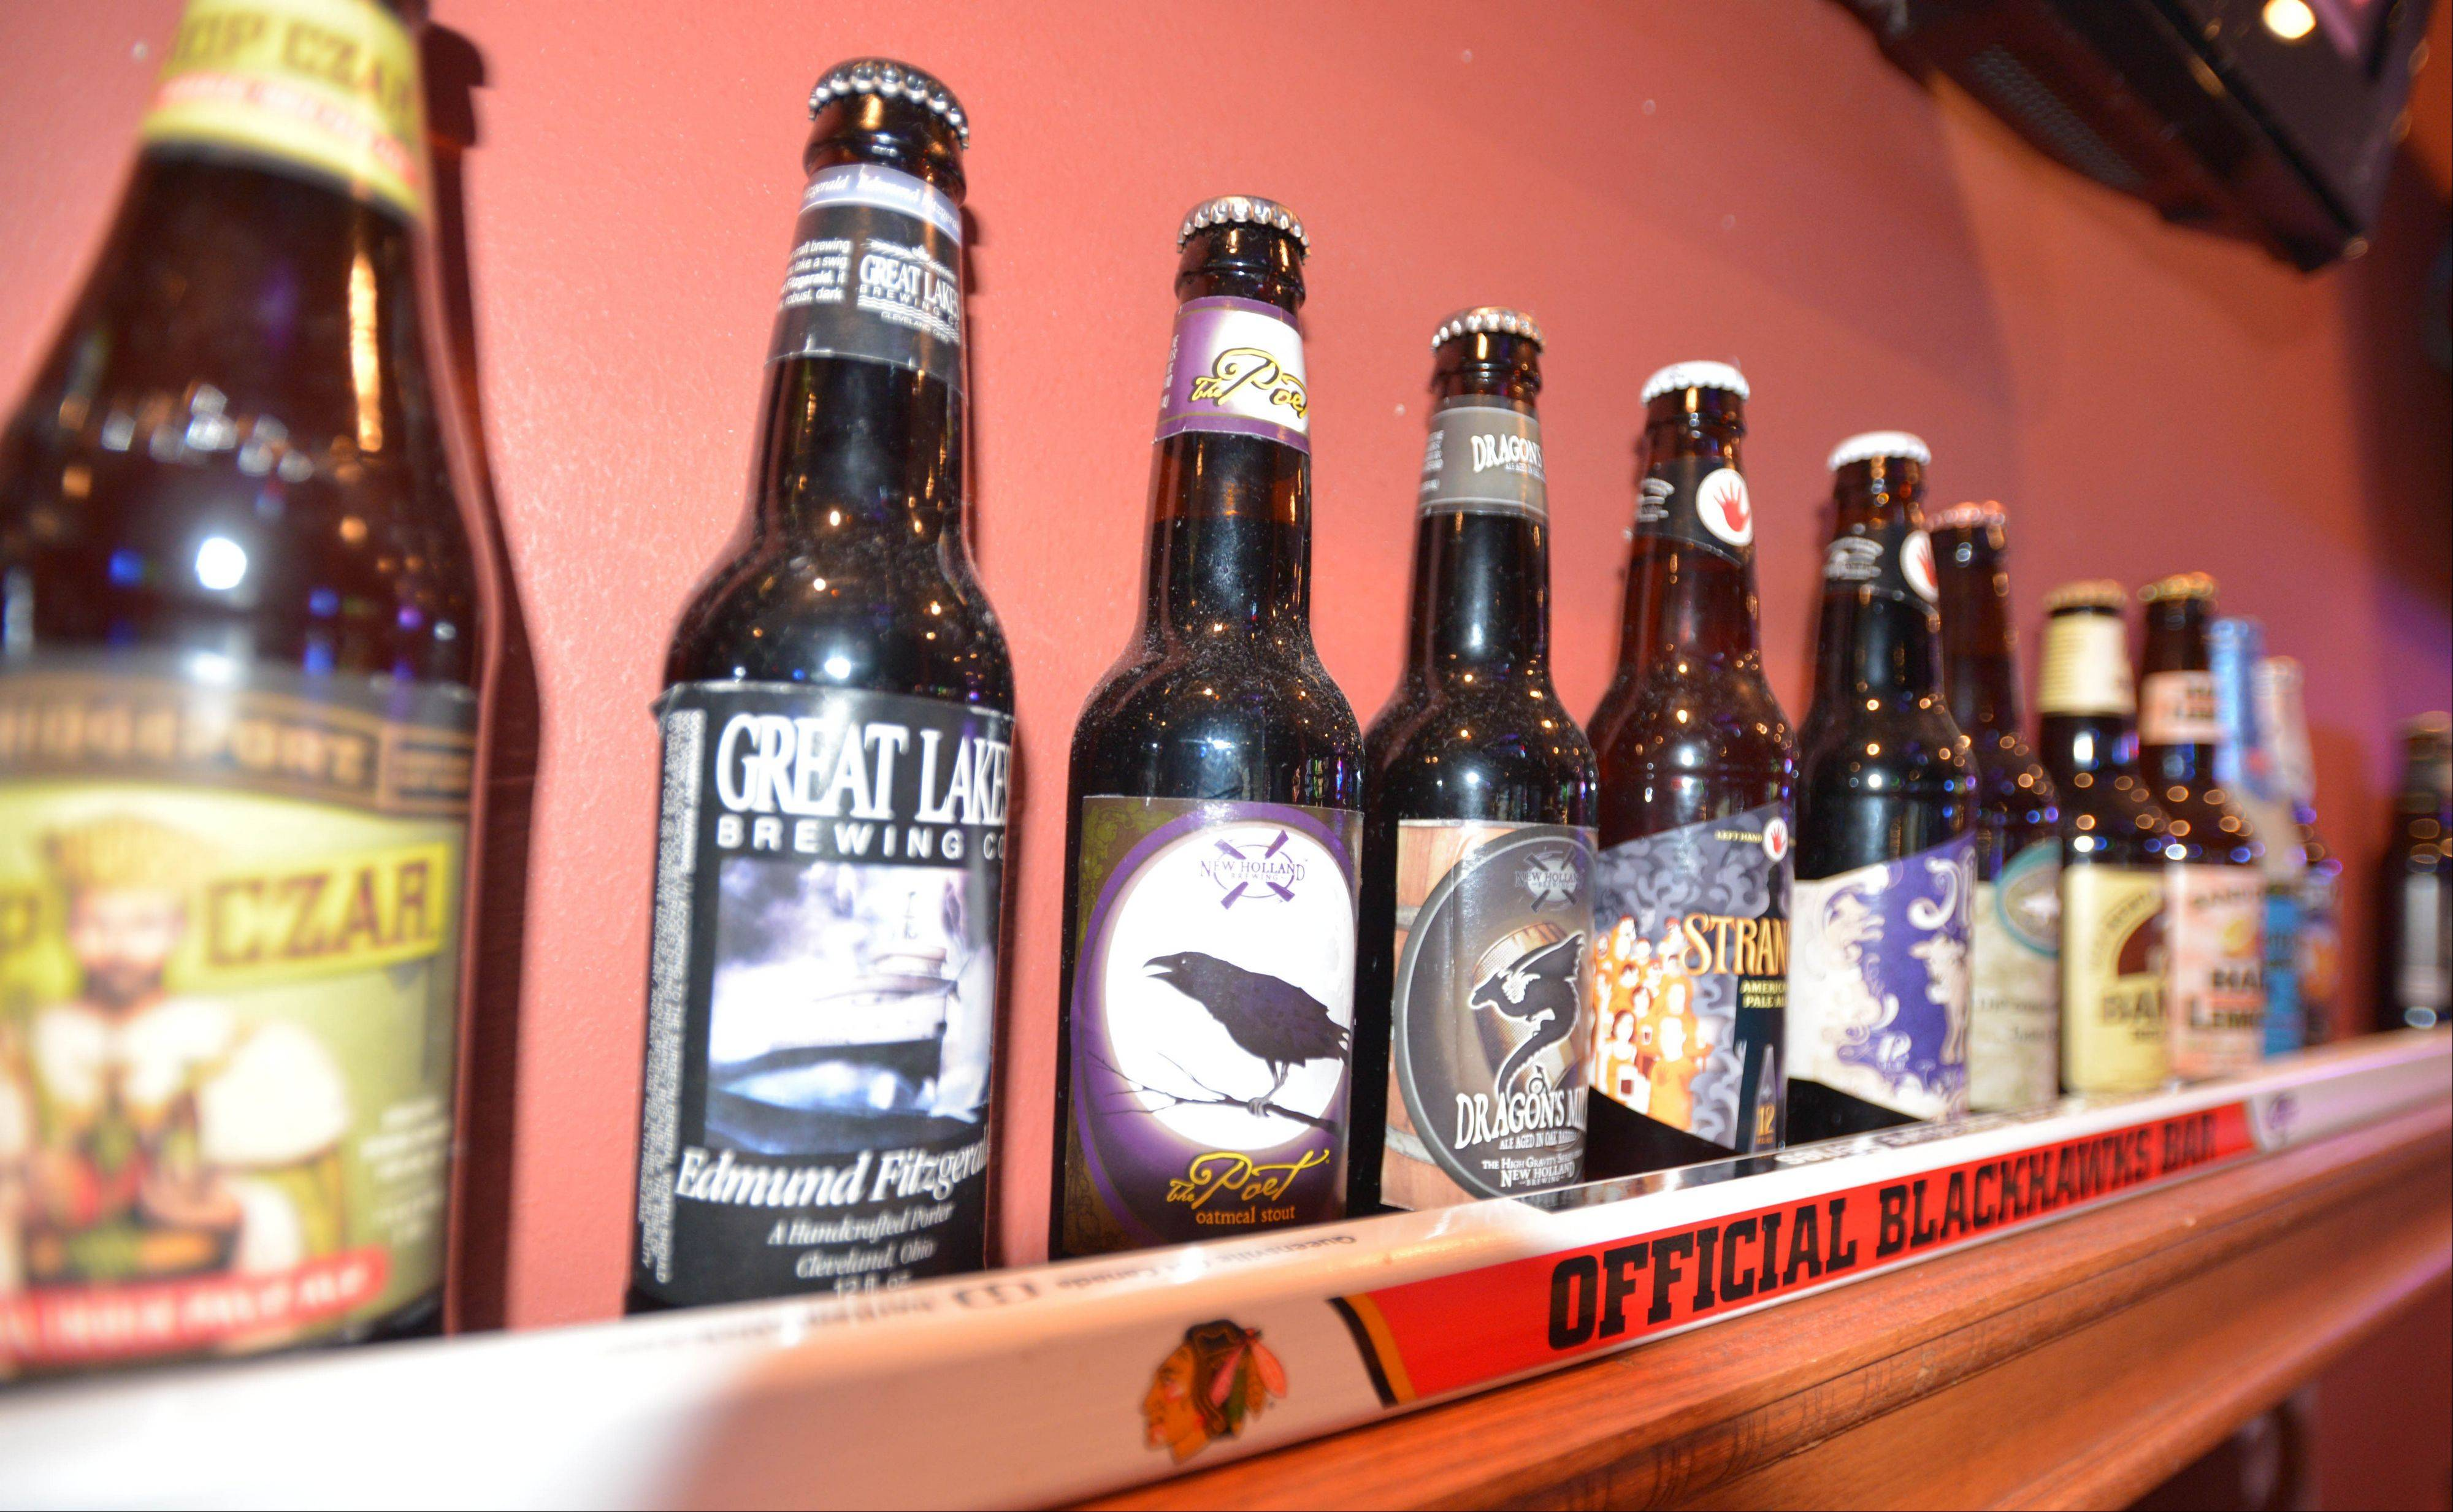 The Town Bar & Grill in Aurora offers more than 50 craft beers, with 20 on draft.